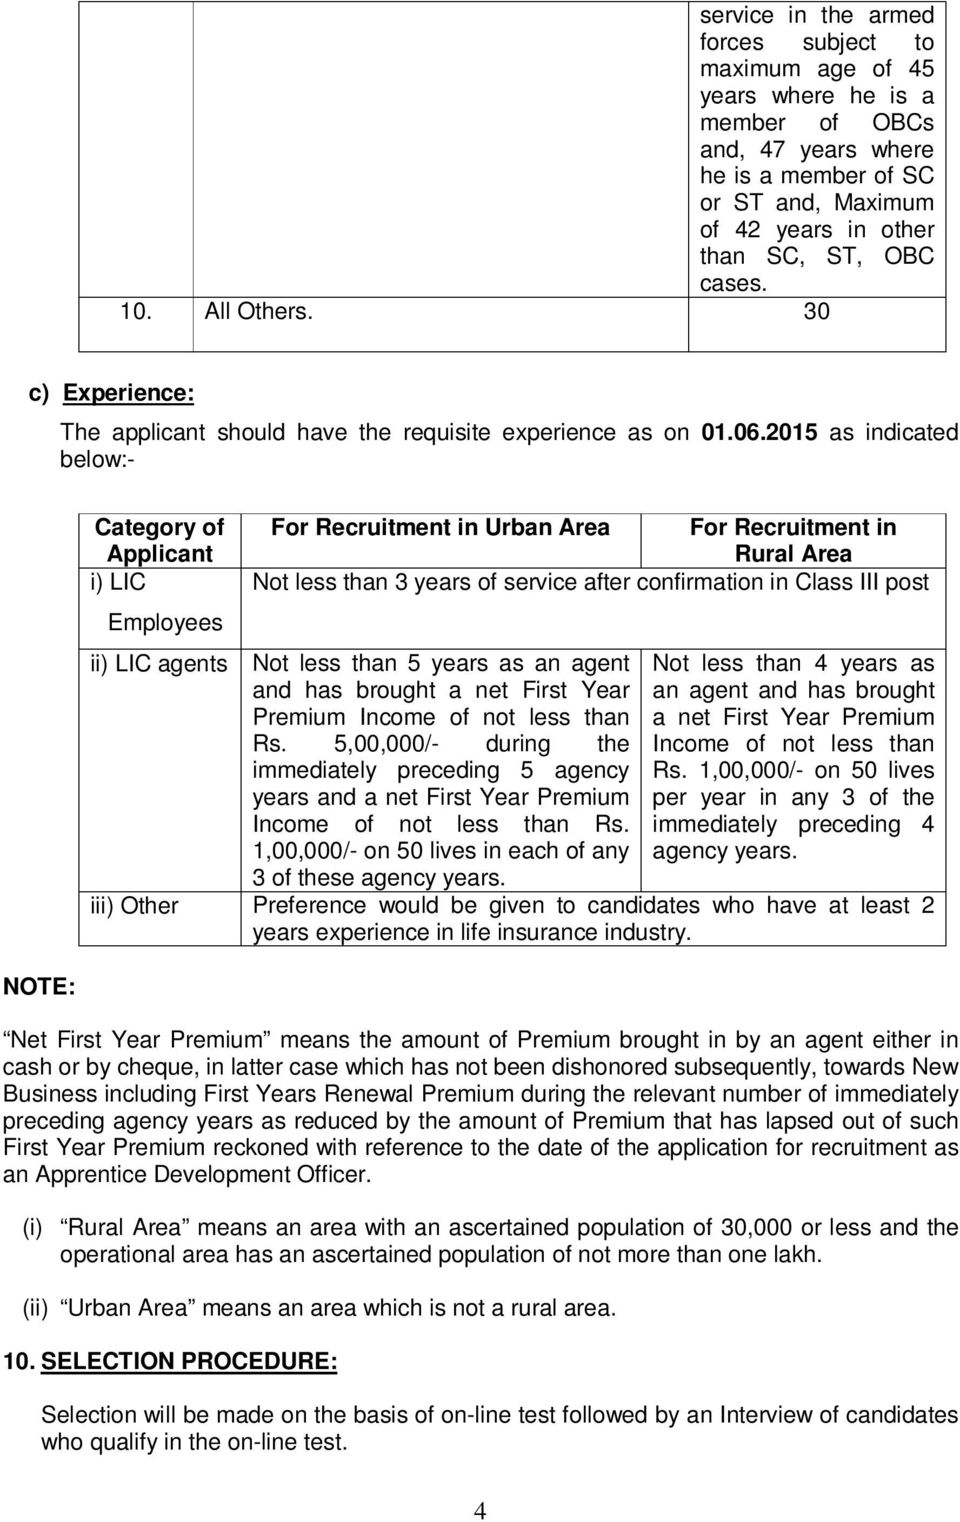 2015 as indicated below:- Category of Applicant i) LIC Employees For Recruitment in Urban Area For Recruitment in Rural Area Not less than 3 years of service after confirmation in Class III post ii)